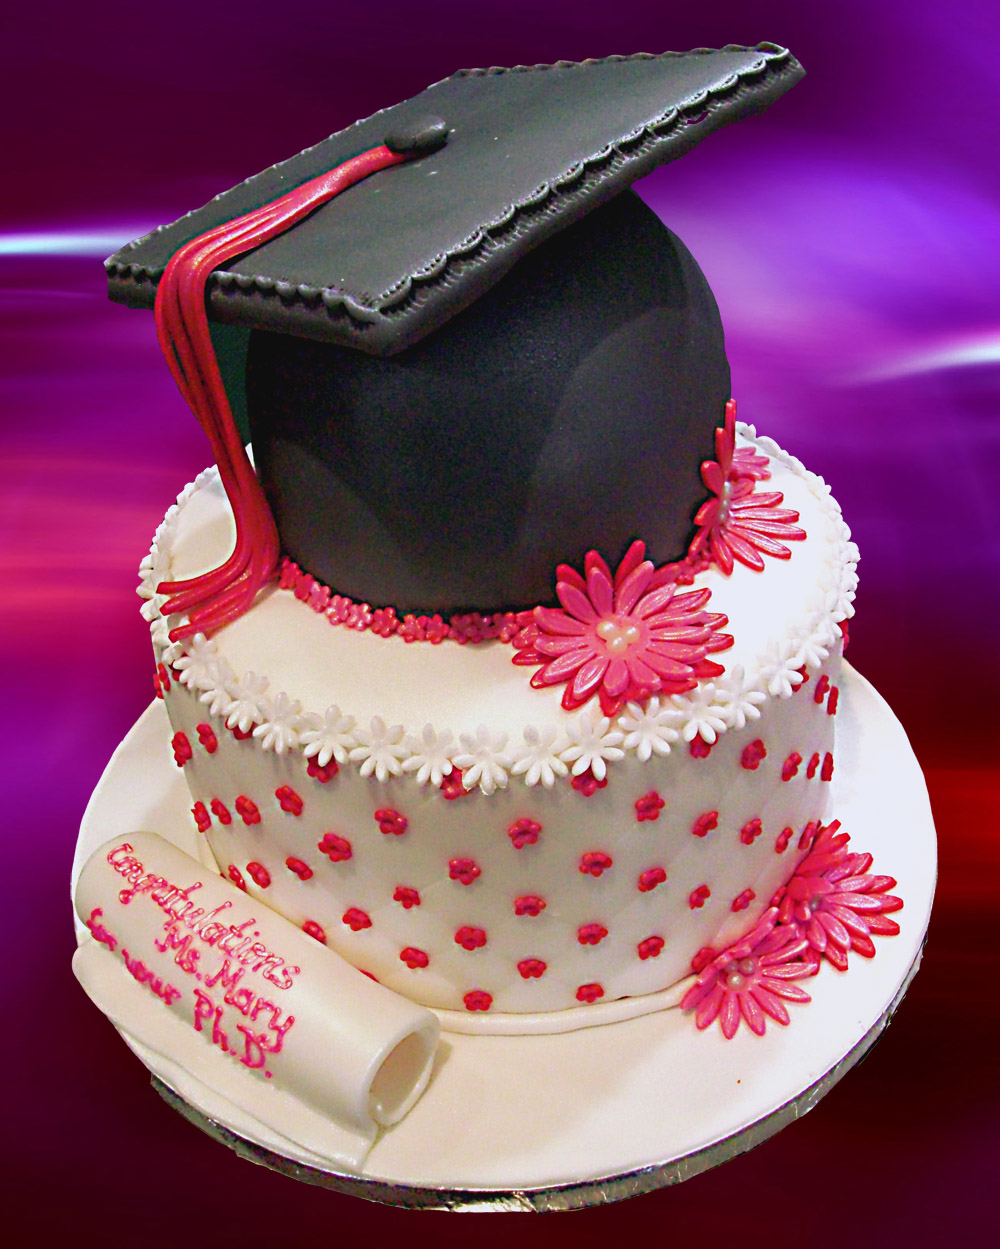 Graduation Cakes - Decoration Ideas | Little Birthday Cakes